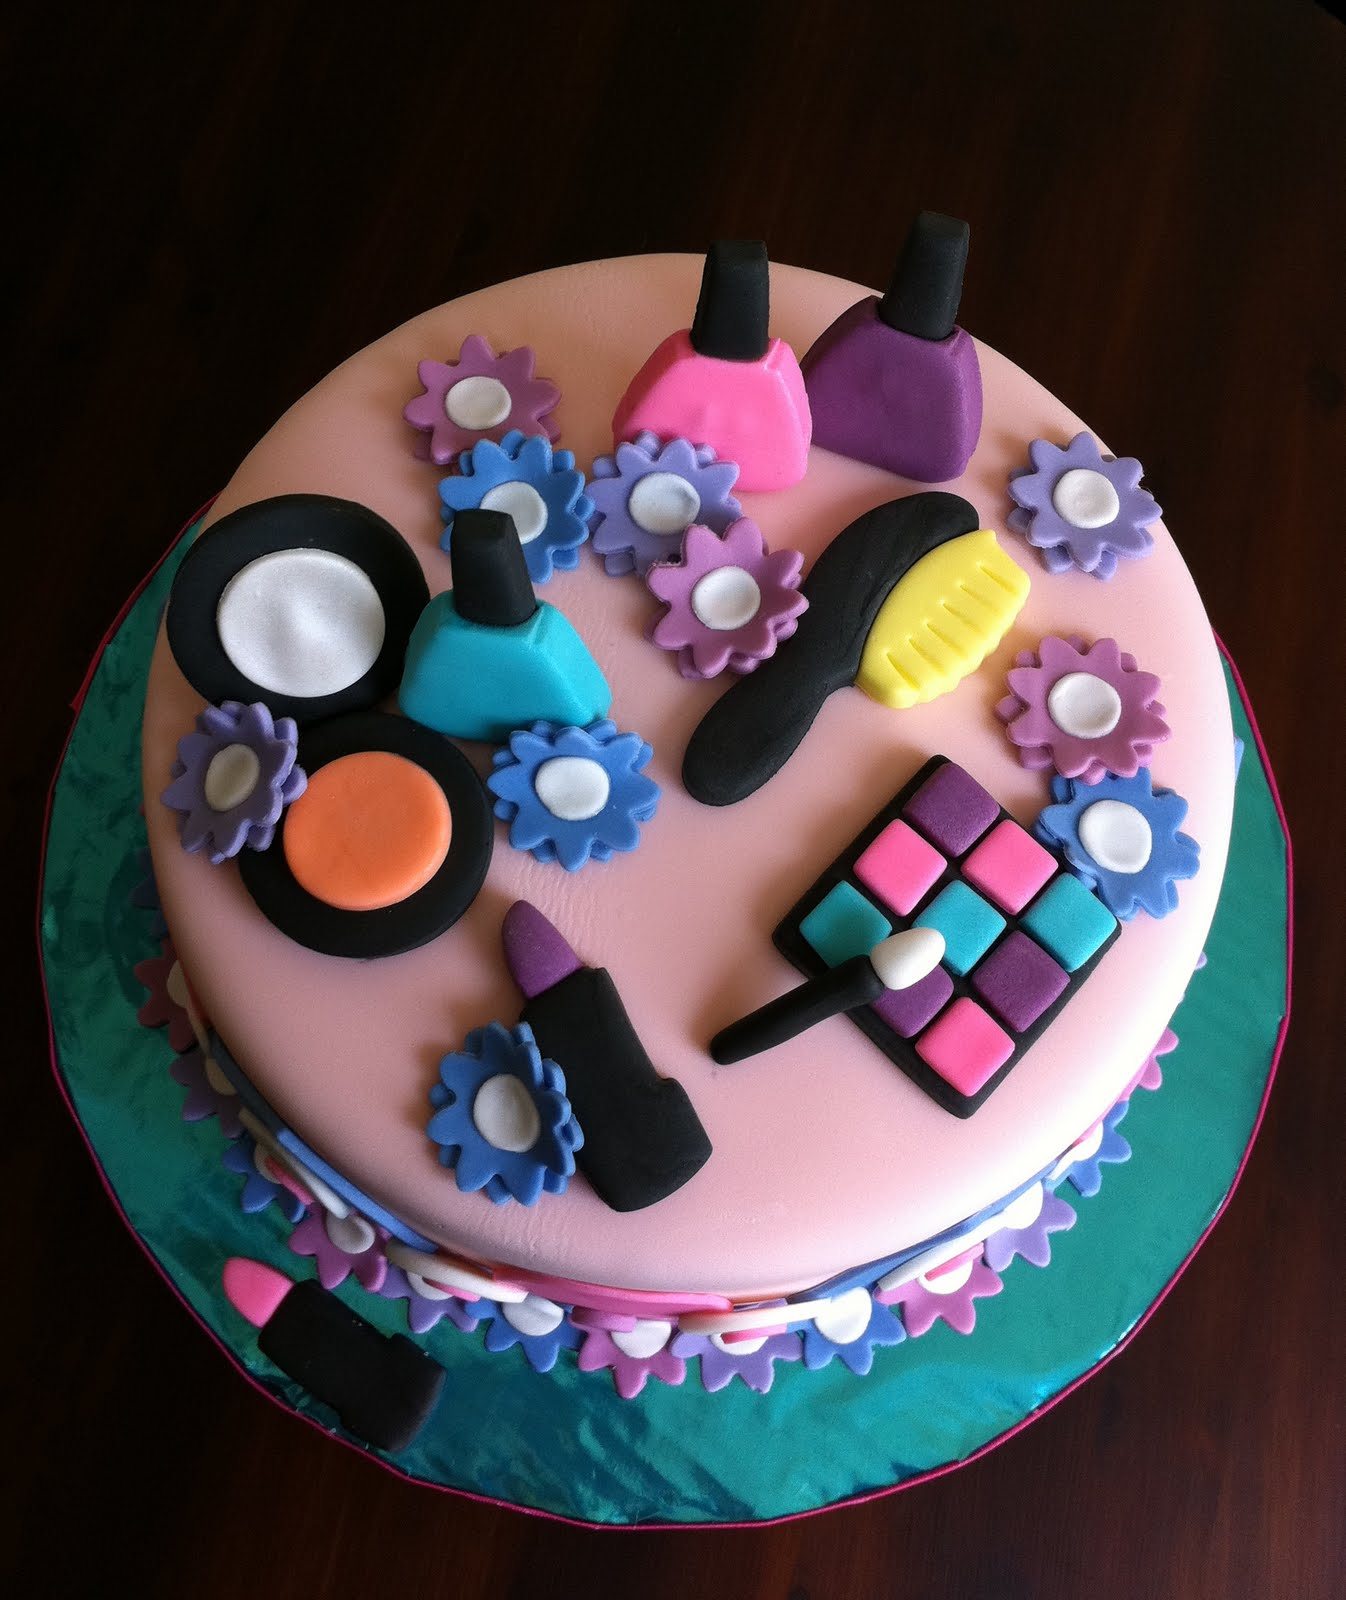 Spa Themed Cakes http://www.lapatisserierose.com/2011/02/spa-themed-birthday-cake.html